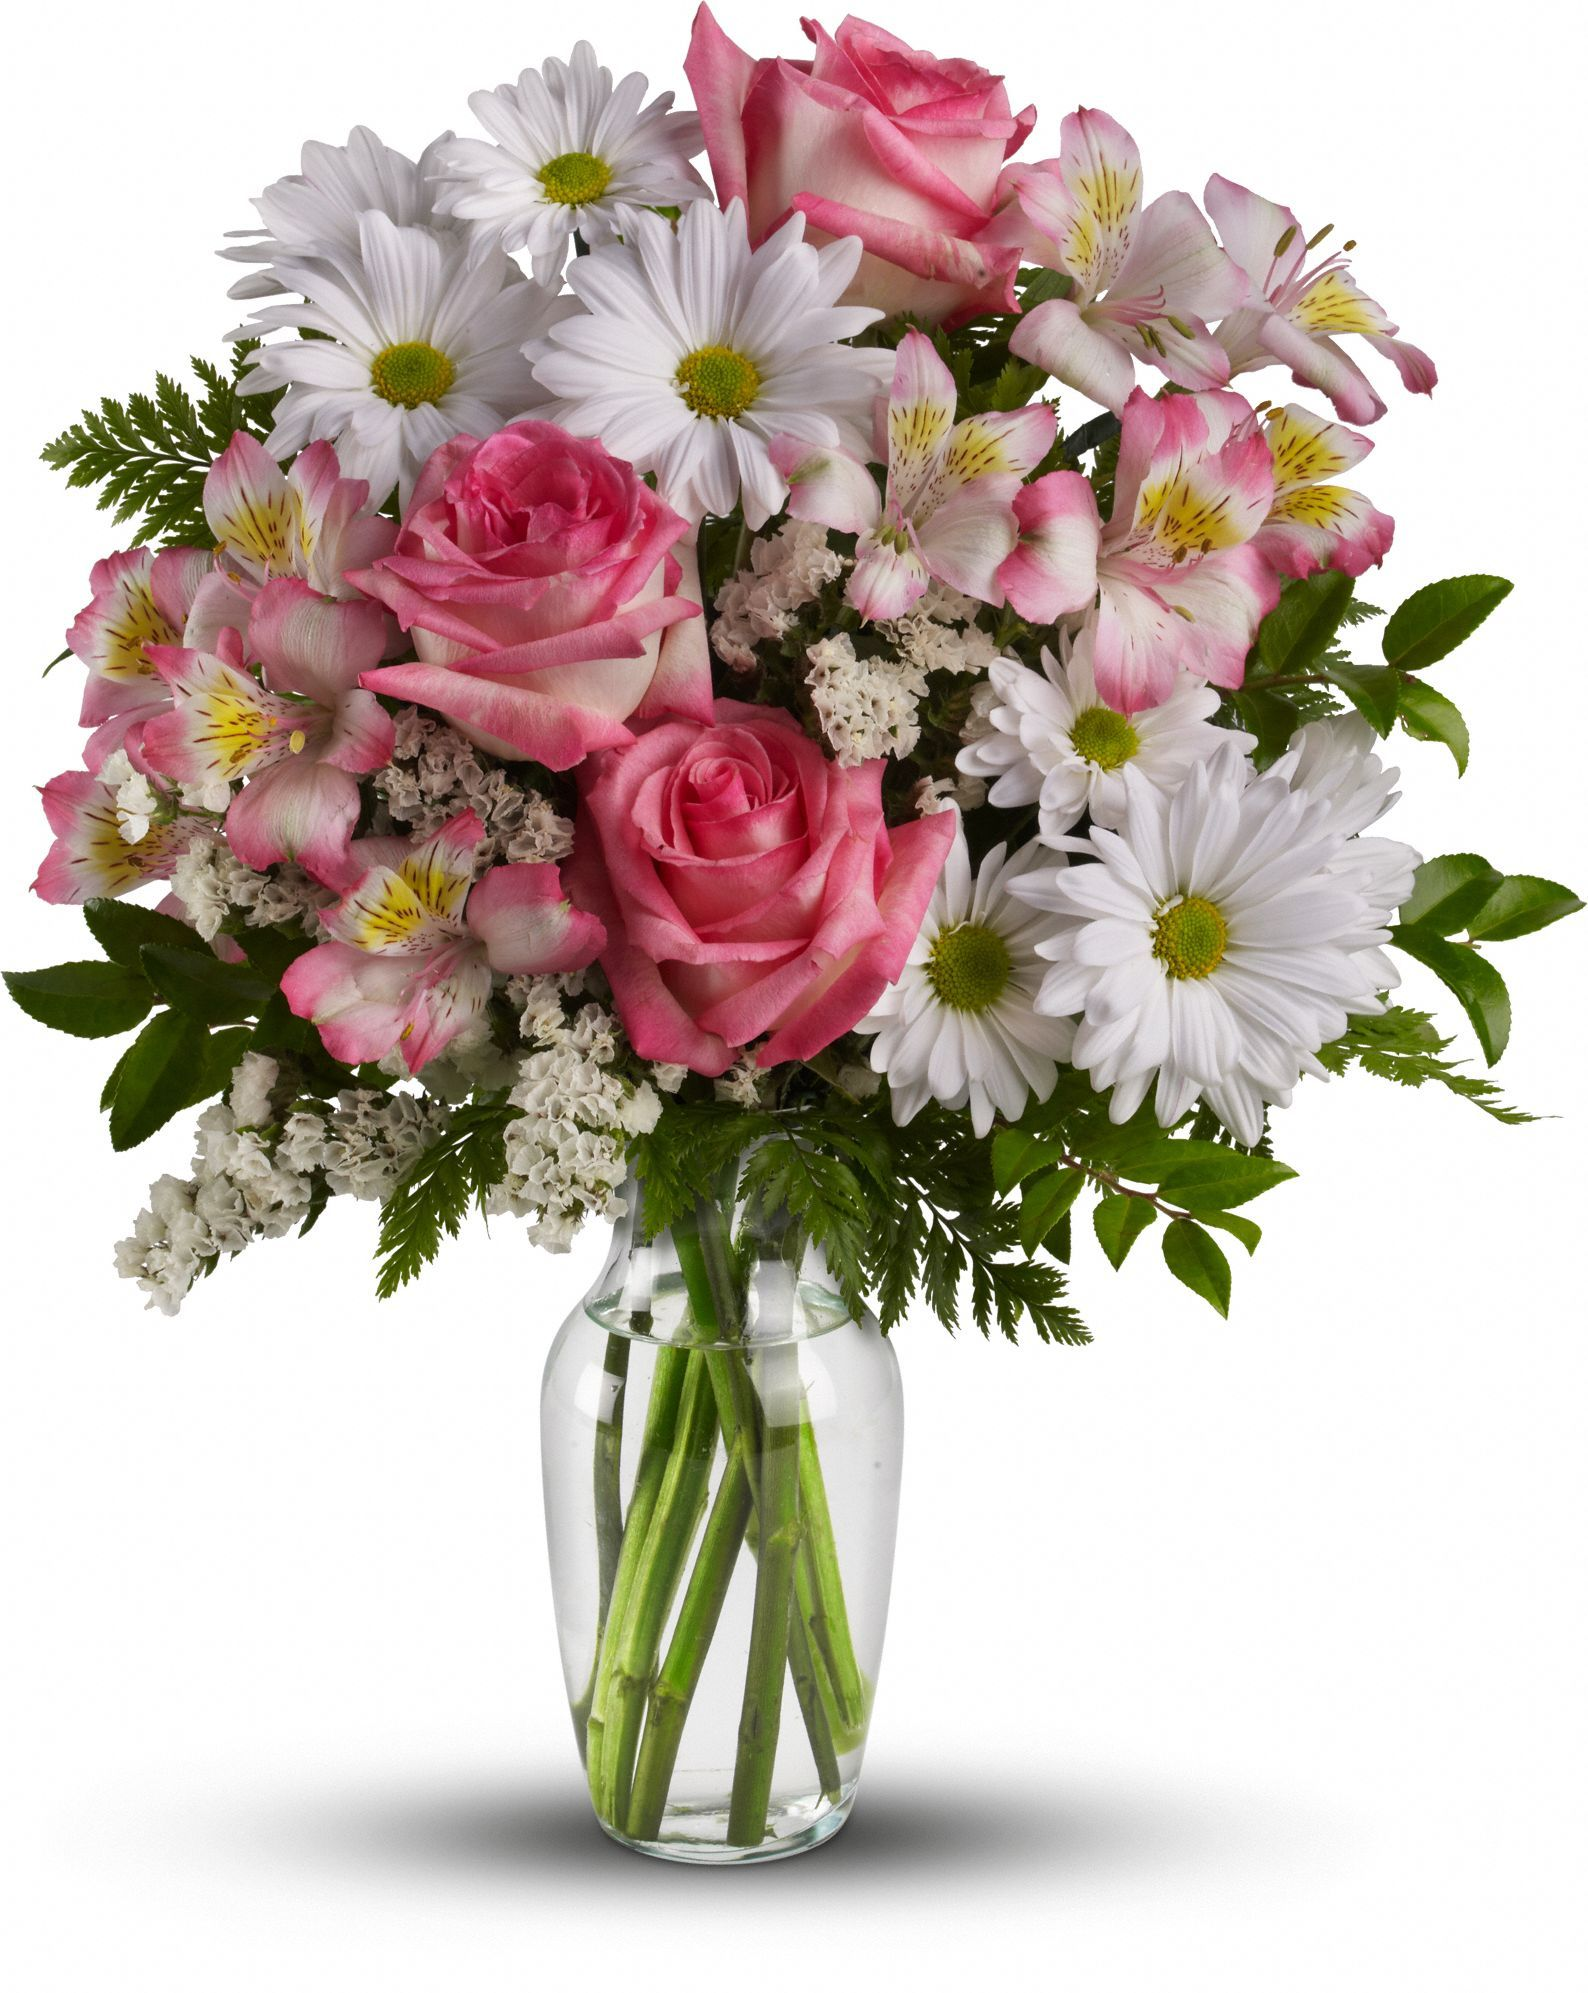 What a treat bouquet with roses save 25 on this bouquet and many plants izmirmasajfo